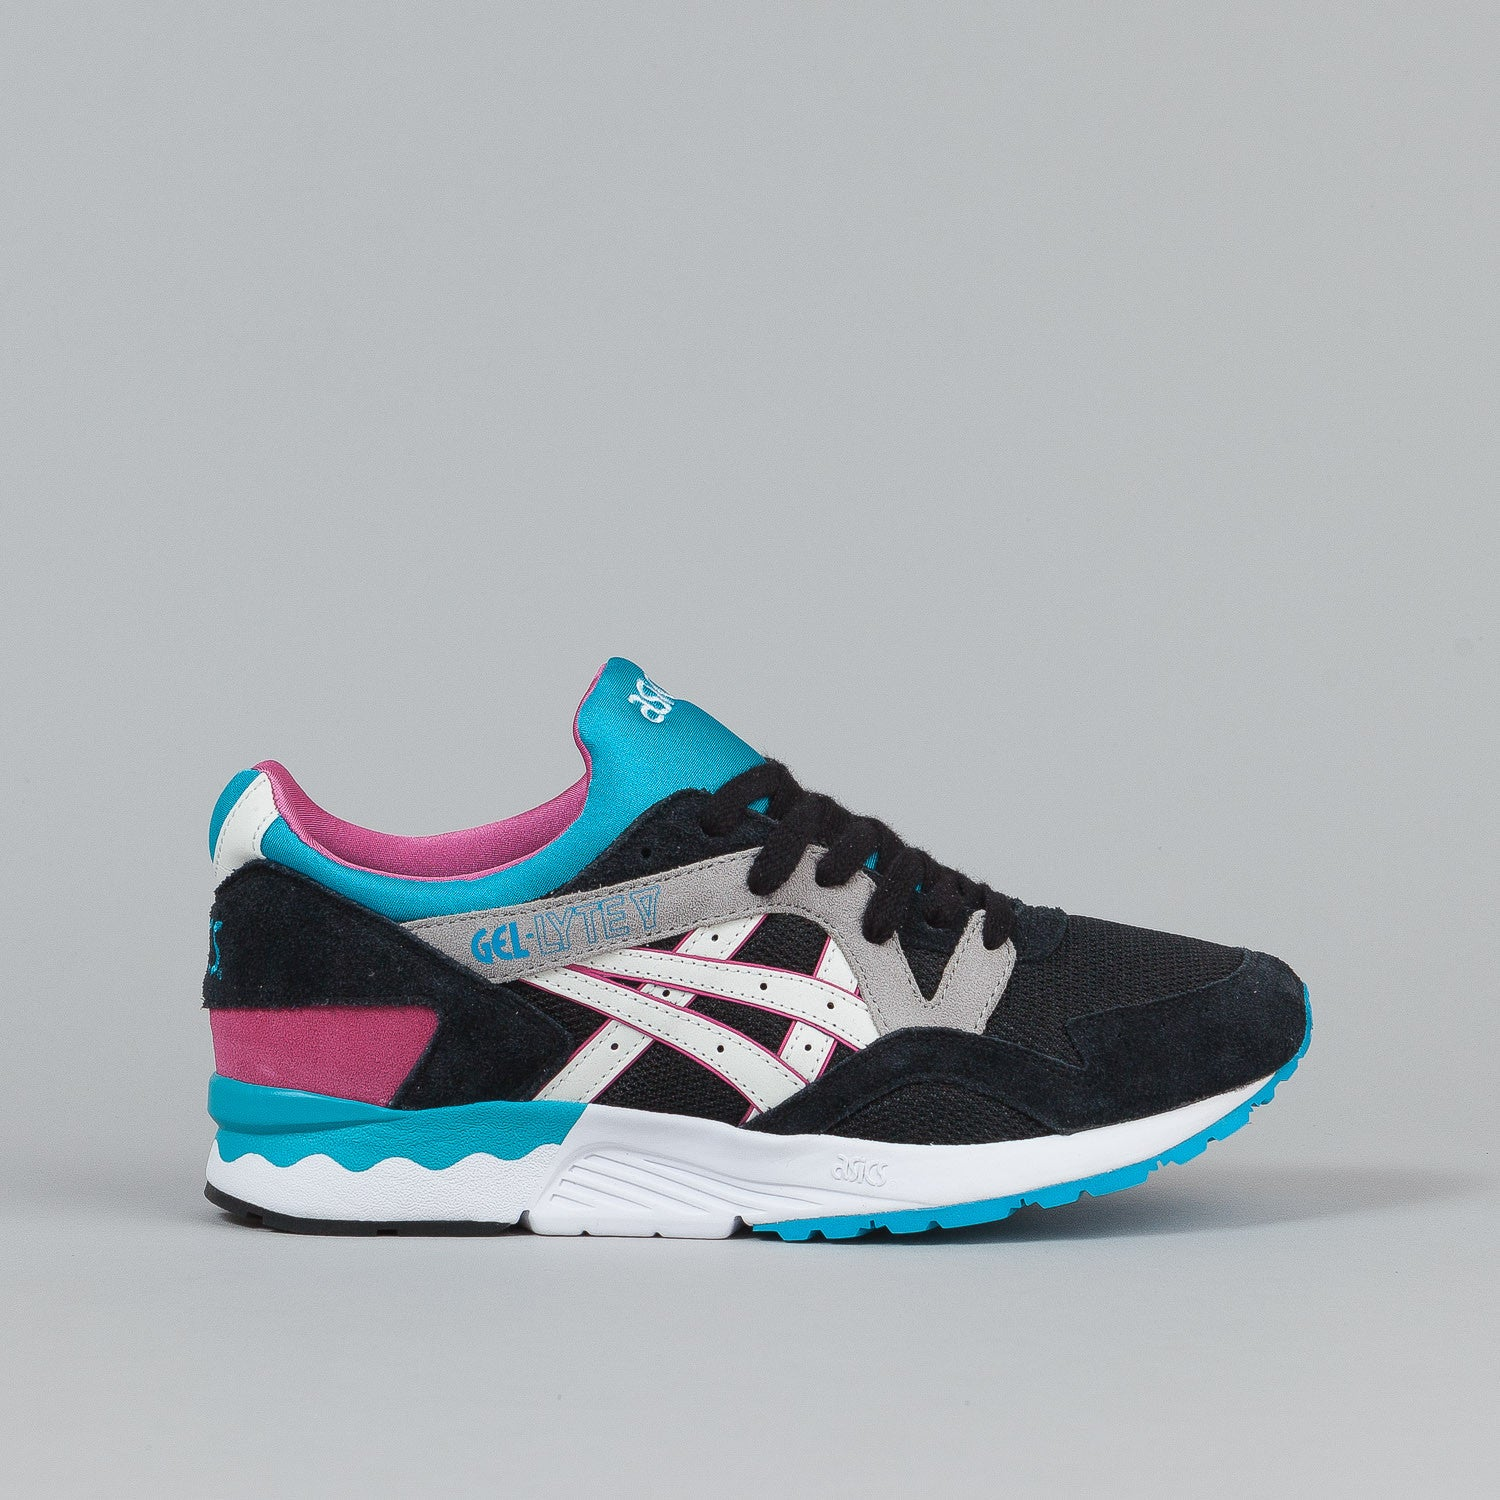 Asics Gel Lyte V Shoes - Black / White / Pink / Light Blue